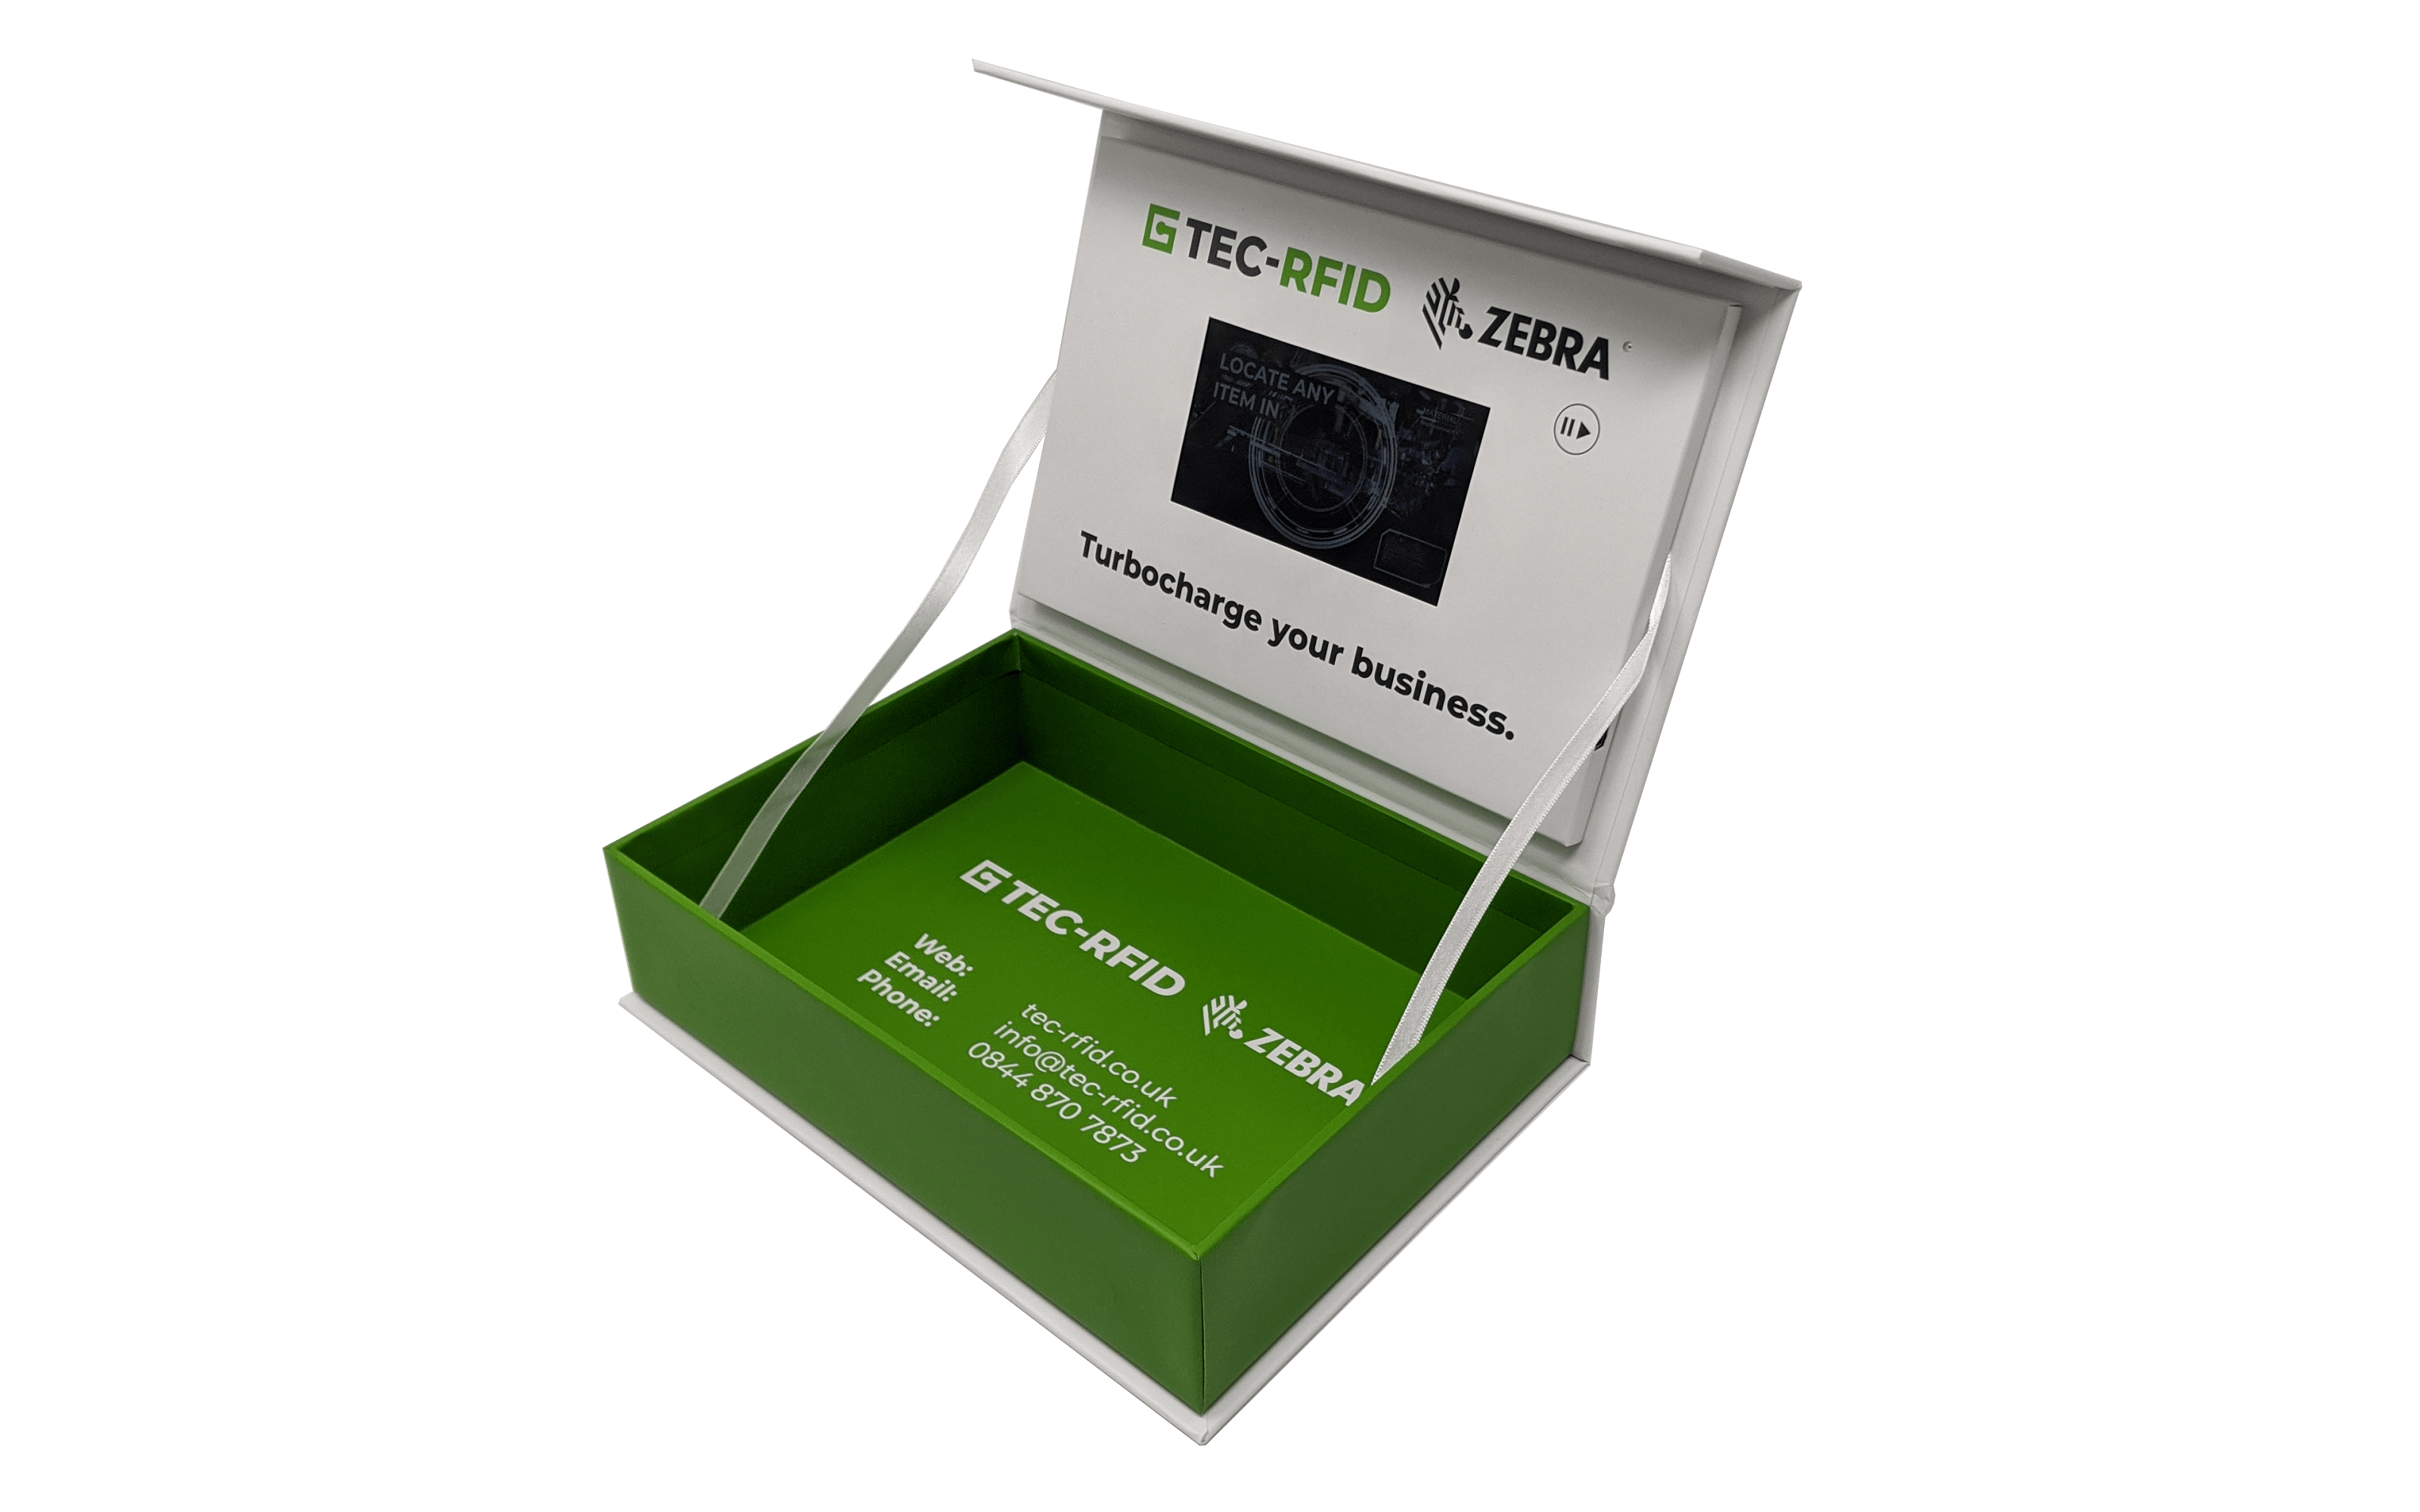 A5 video box with 5 inch screen.